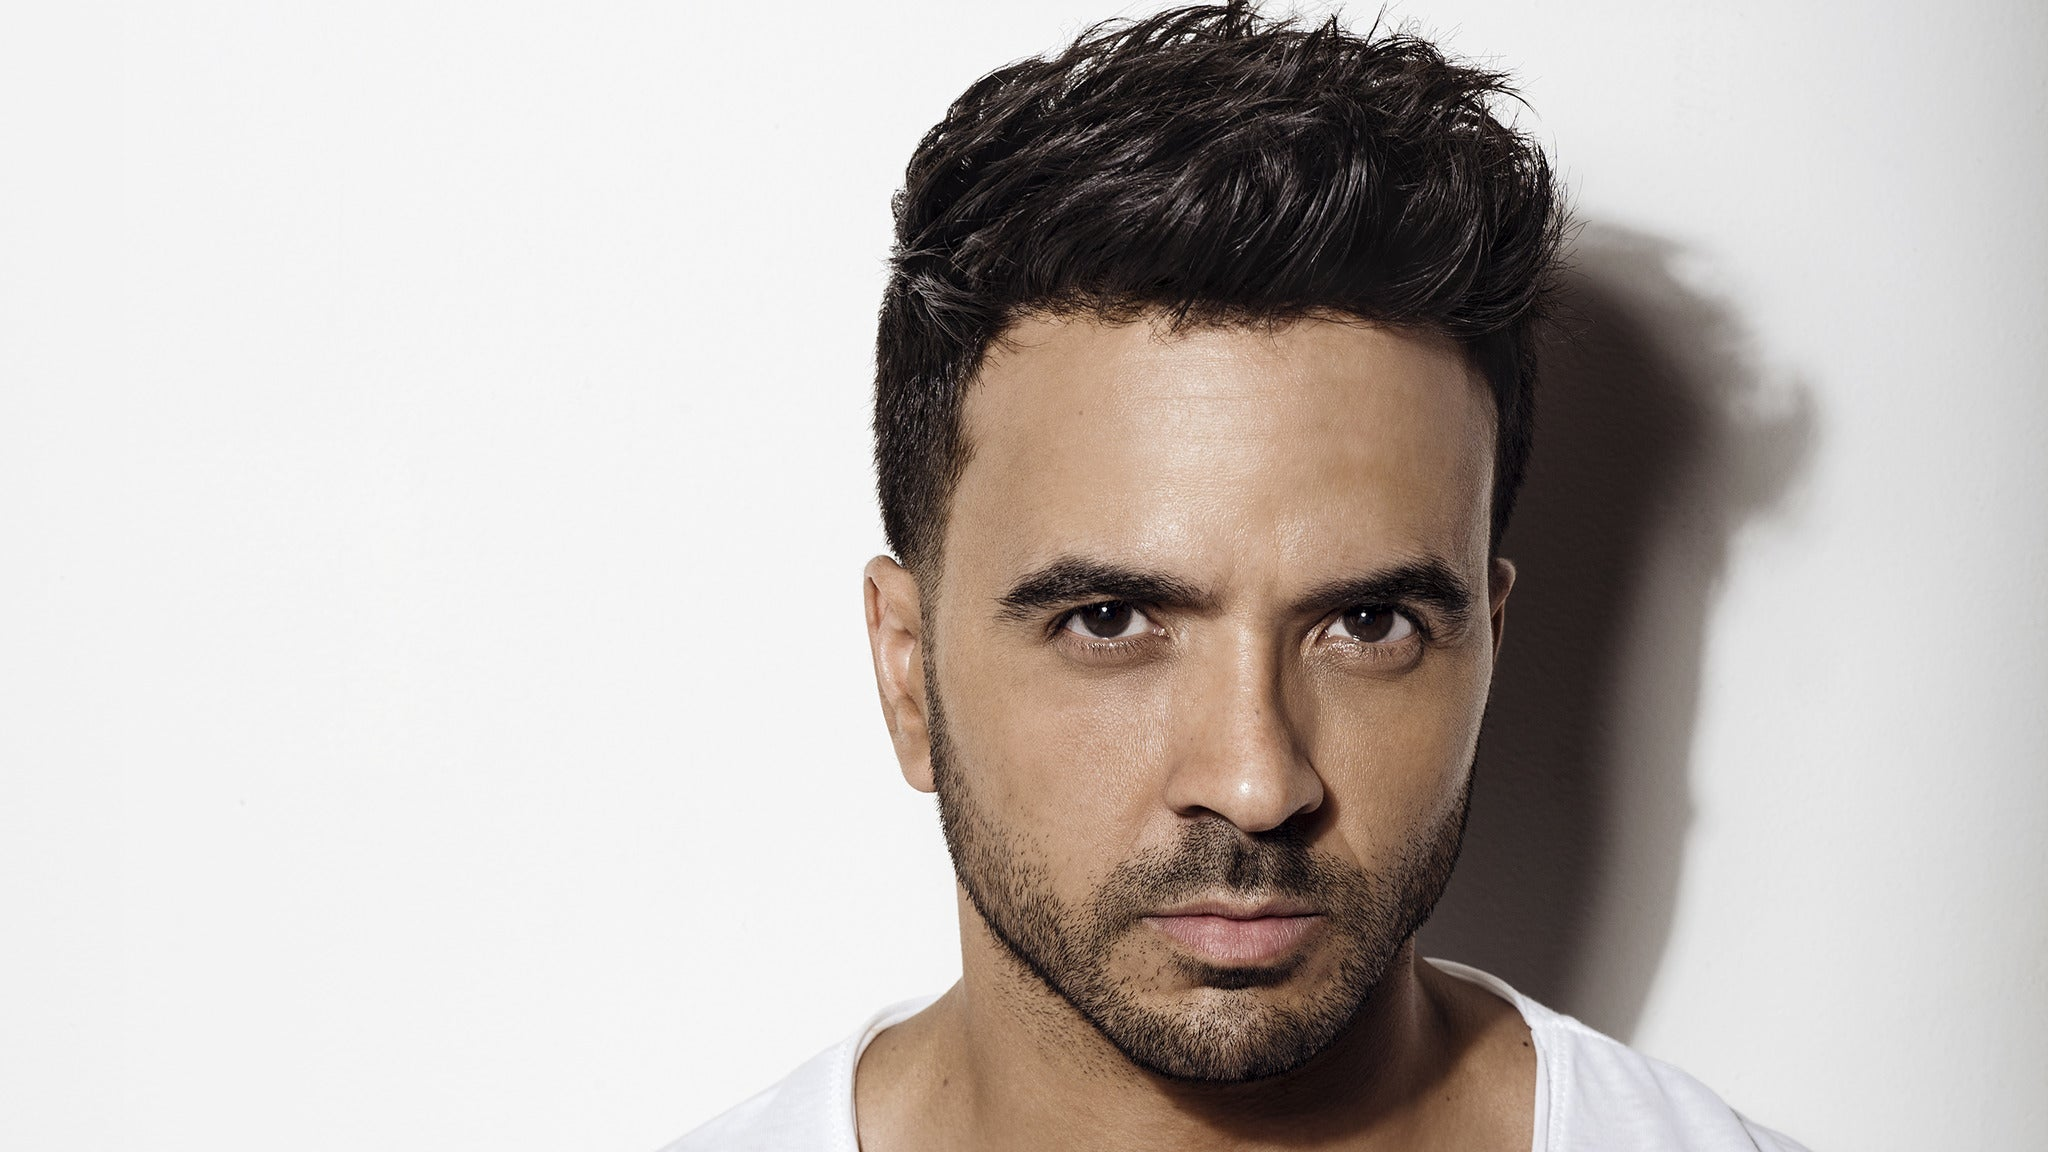 Luis Fonsi at Pechanga Resort and Casino